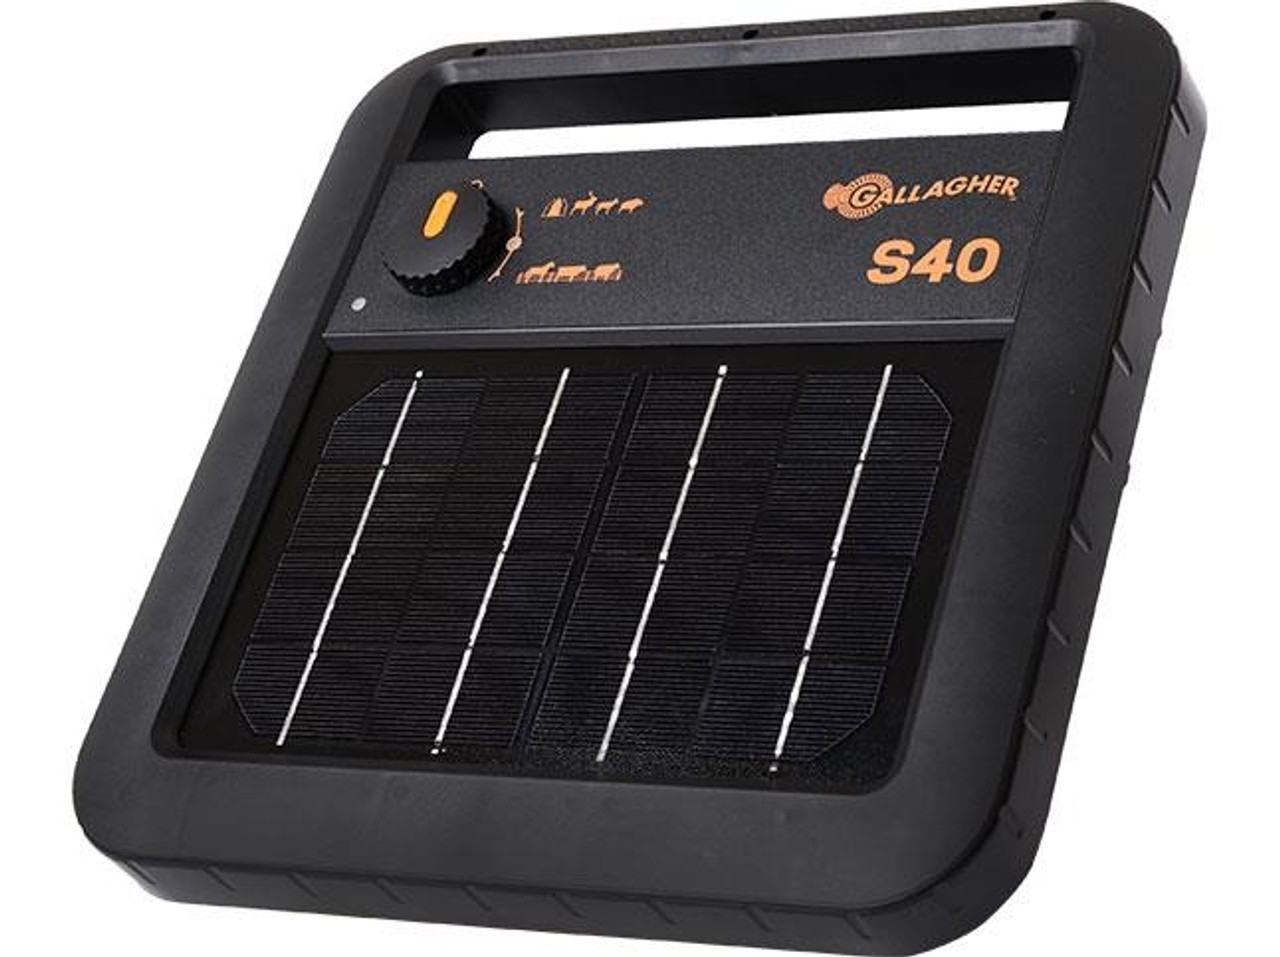 Gallagher S40 Solar Charger